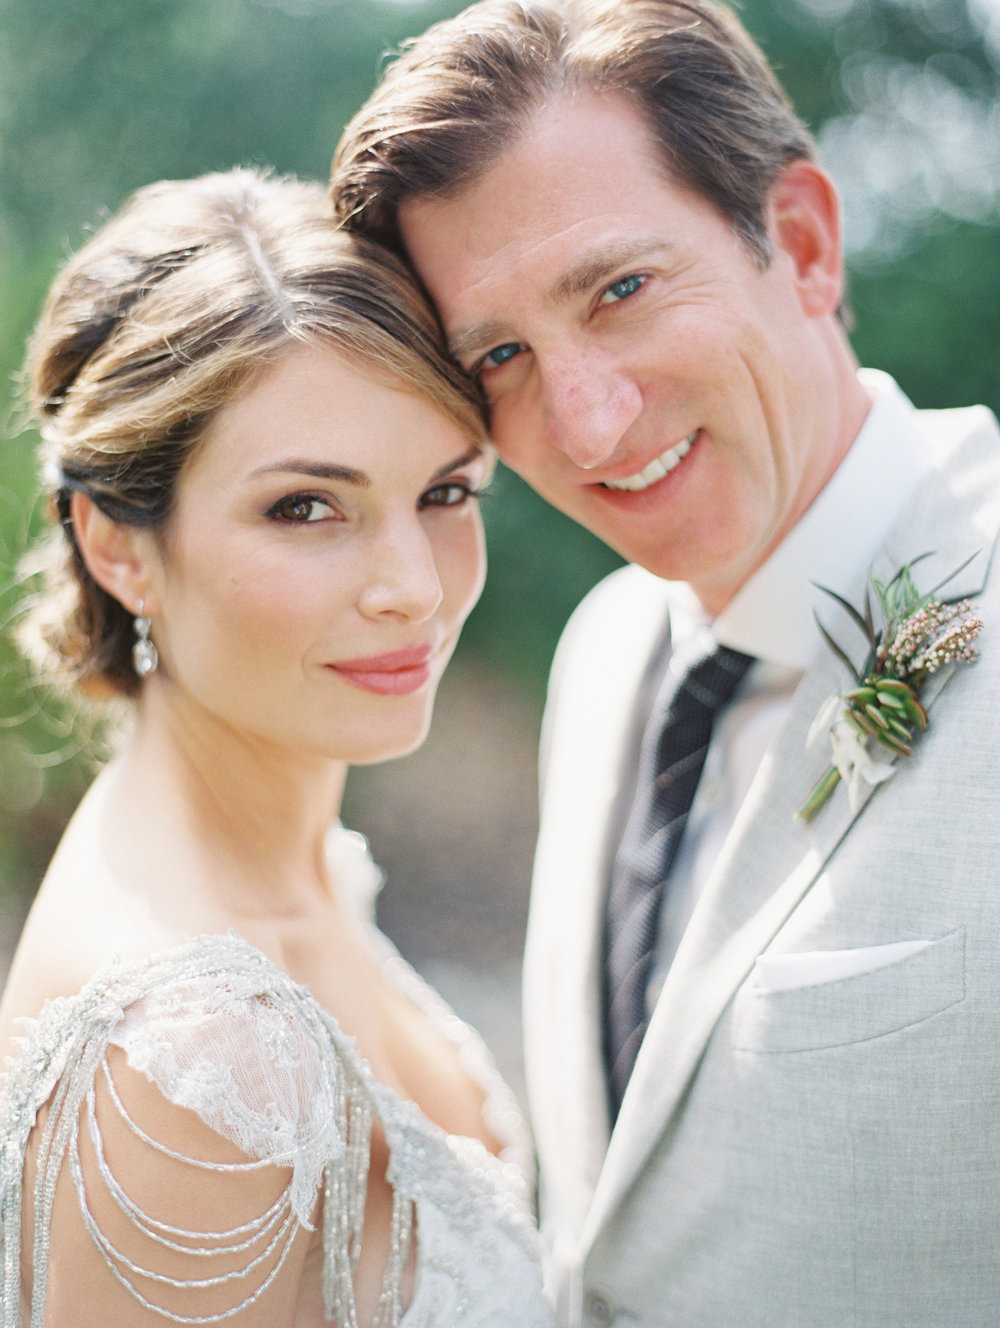 santabarbarwedding.com | Photo: Kurt Boomer | Shades of Gray wedding ideas